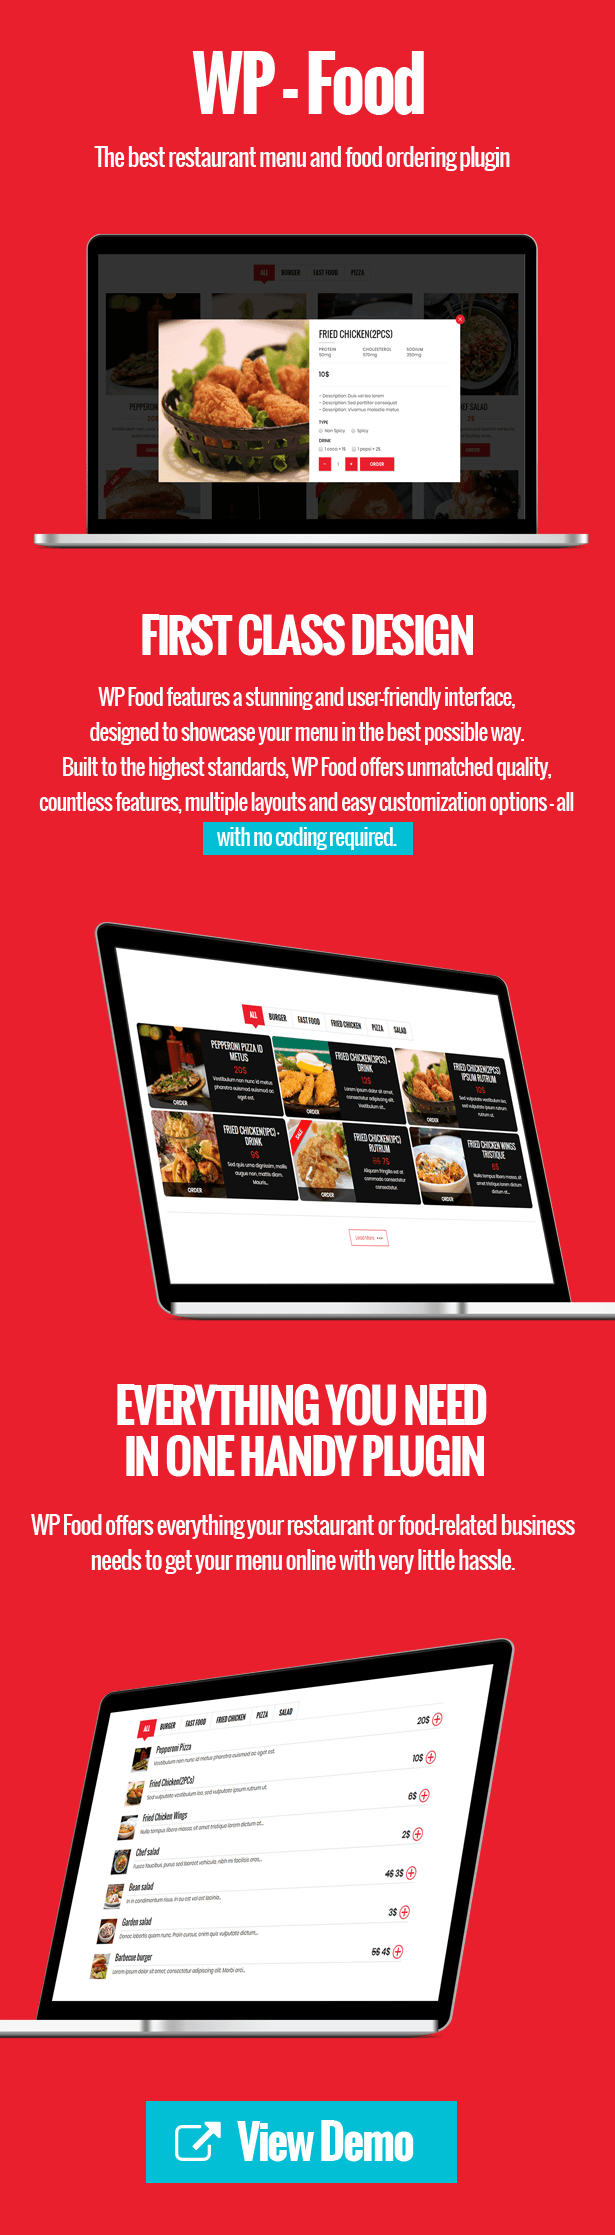 WP Food - Restaurant Menu & Food ordering - 2